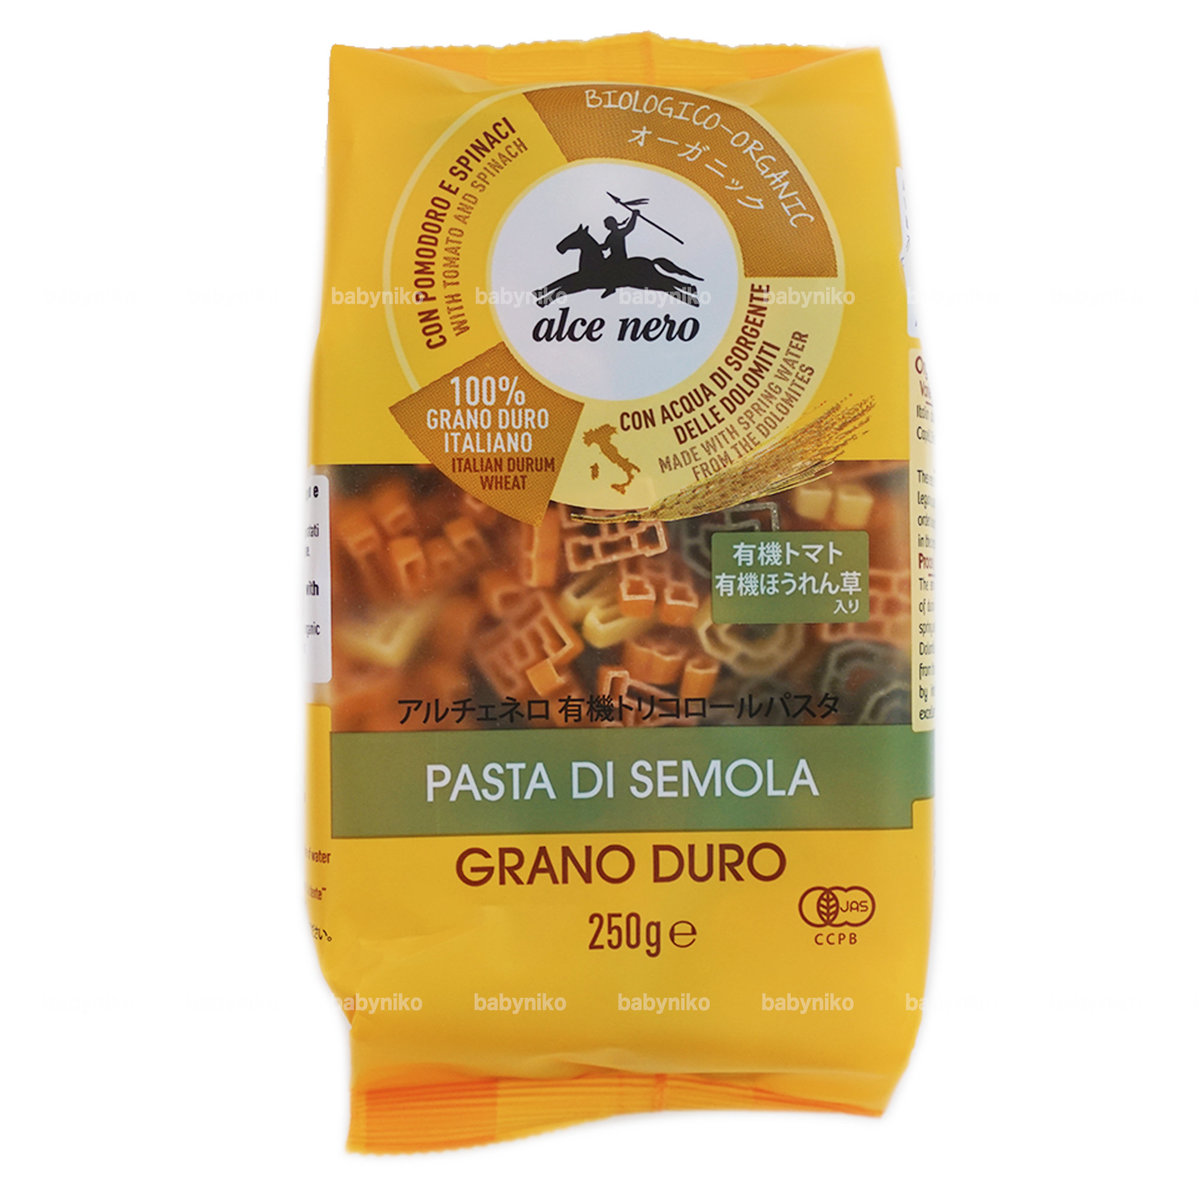 Alce Nero Organic durum wheat semolina pasta with tomato and spinach